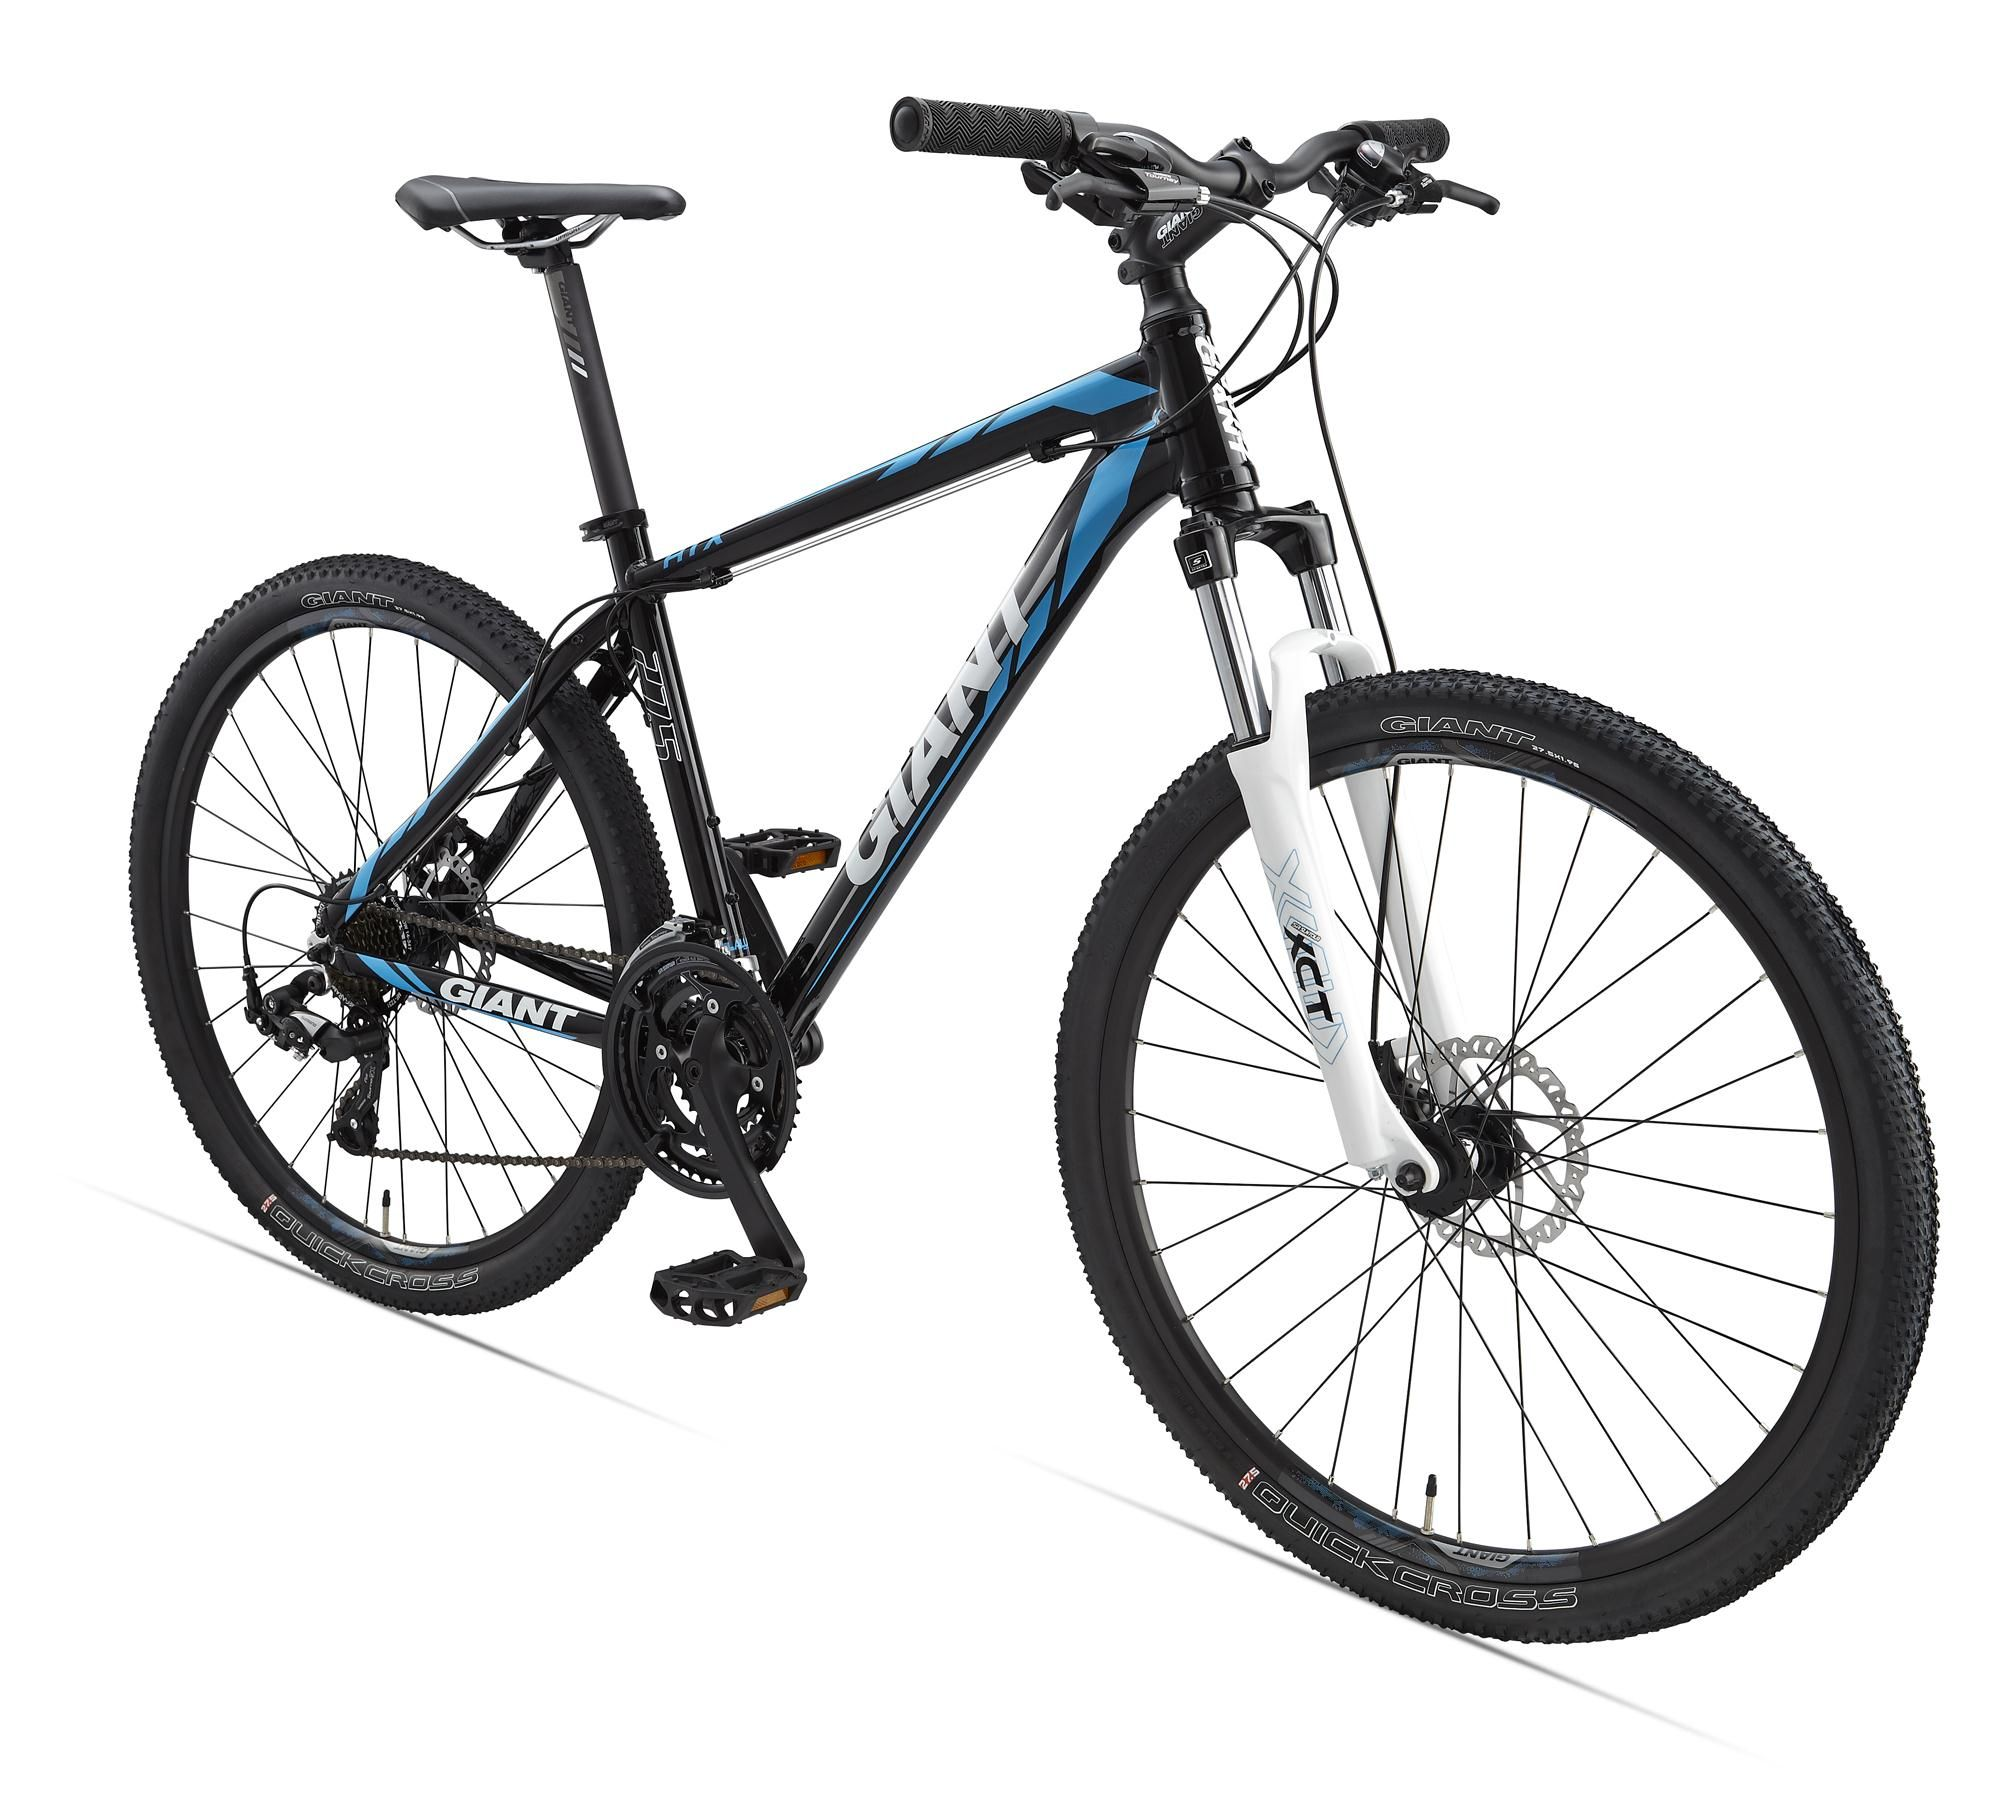 Atx 27 5 2 Giant Bicycles Giant Bicycles Giant Bikes Giant Bicycle